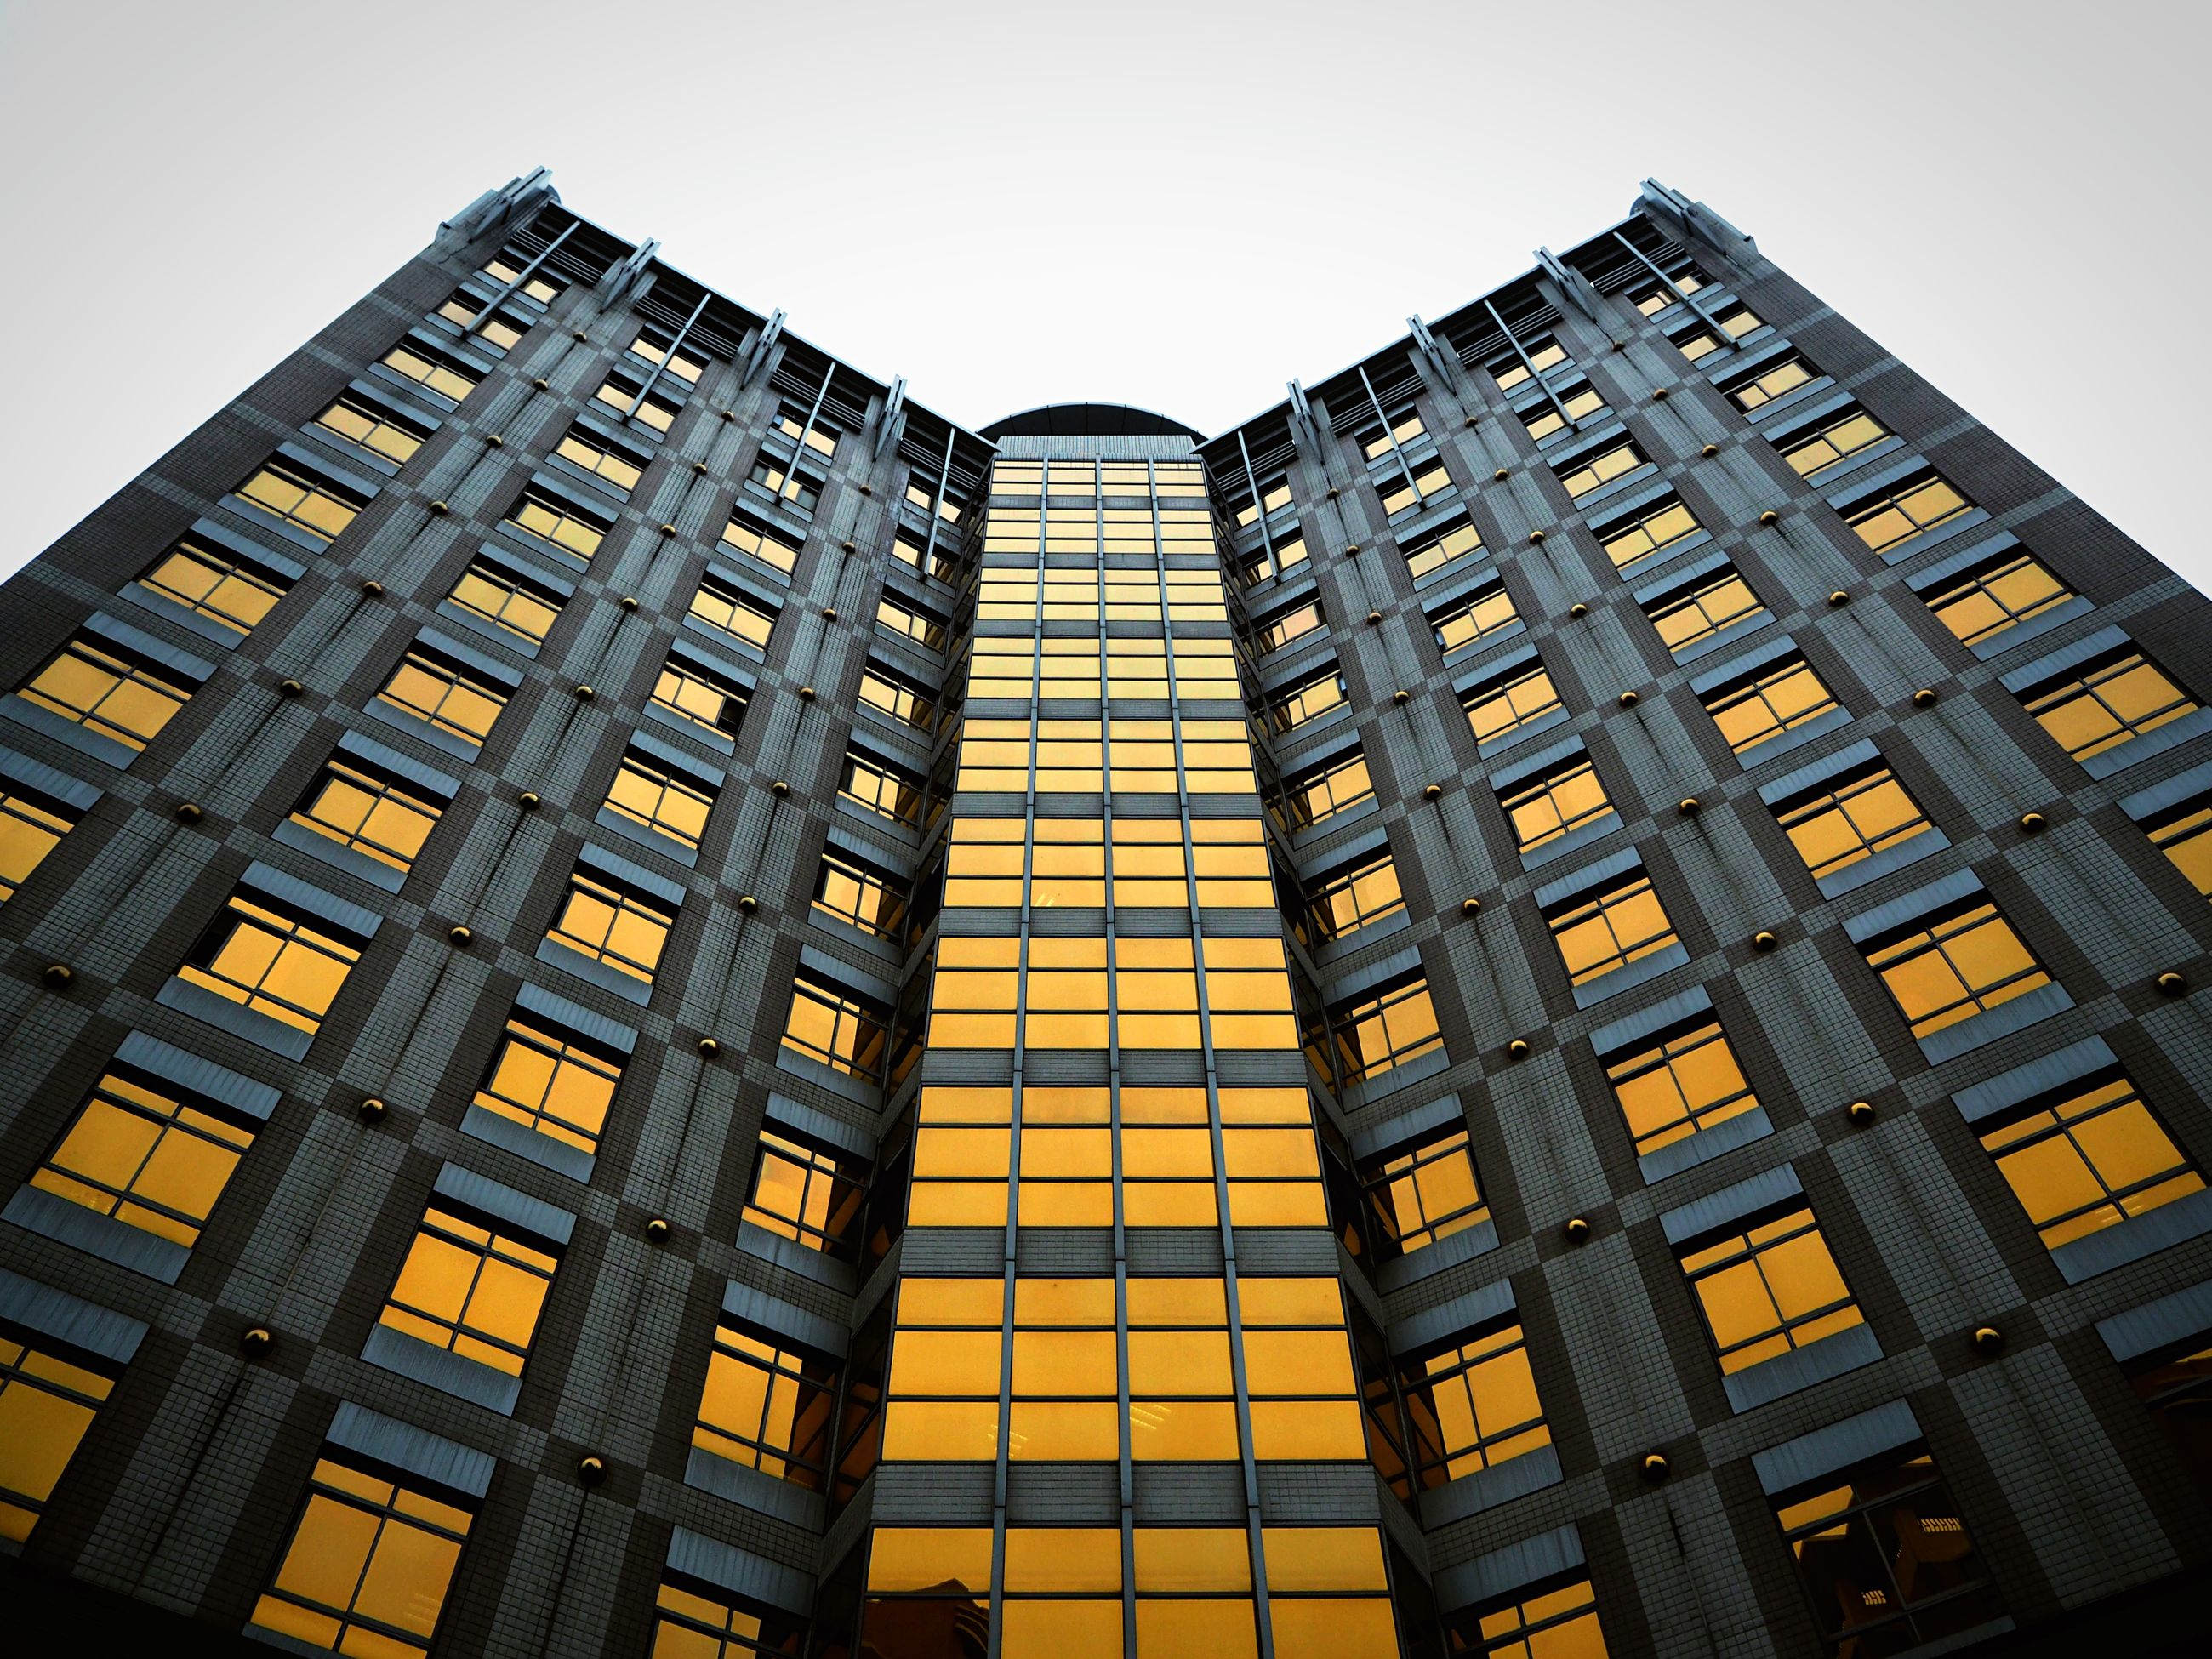 architecture, building exterior, built structure, low angle view, window, city, clear sky, building, tall - high, modern, office building, sky, skyscraper, tower, glass - material, outdoors, day, no people, residential building, apartment